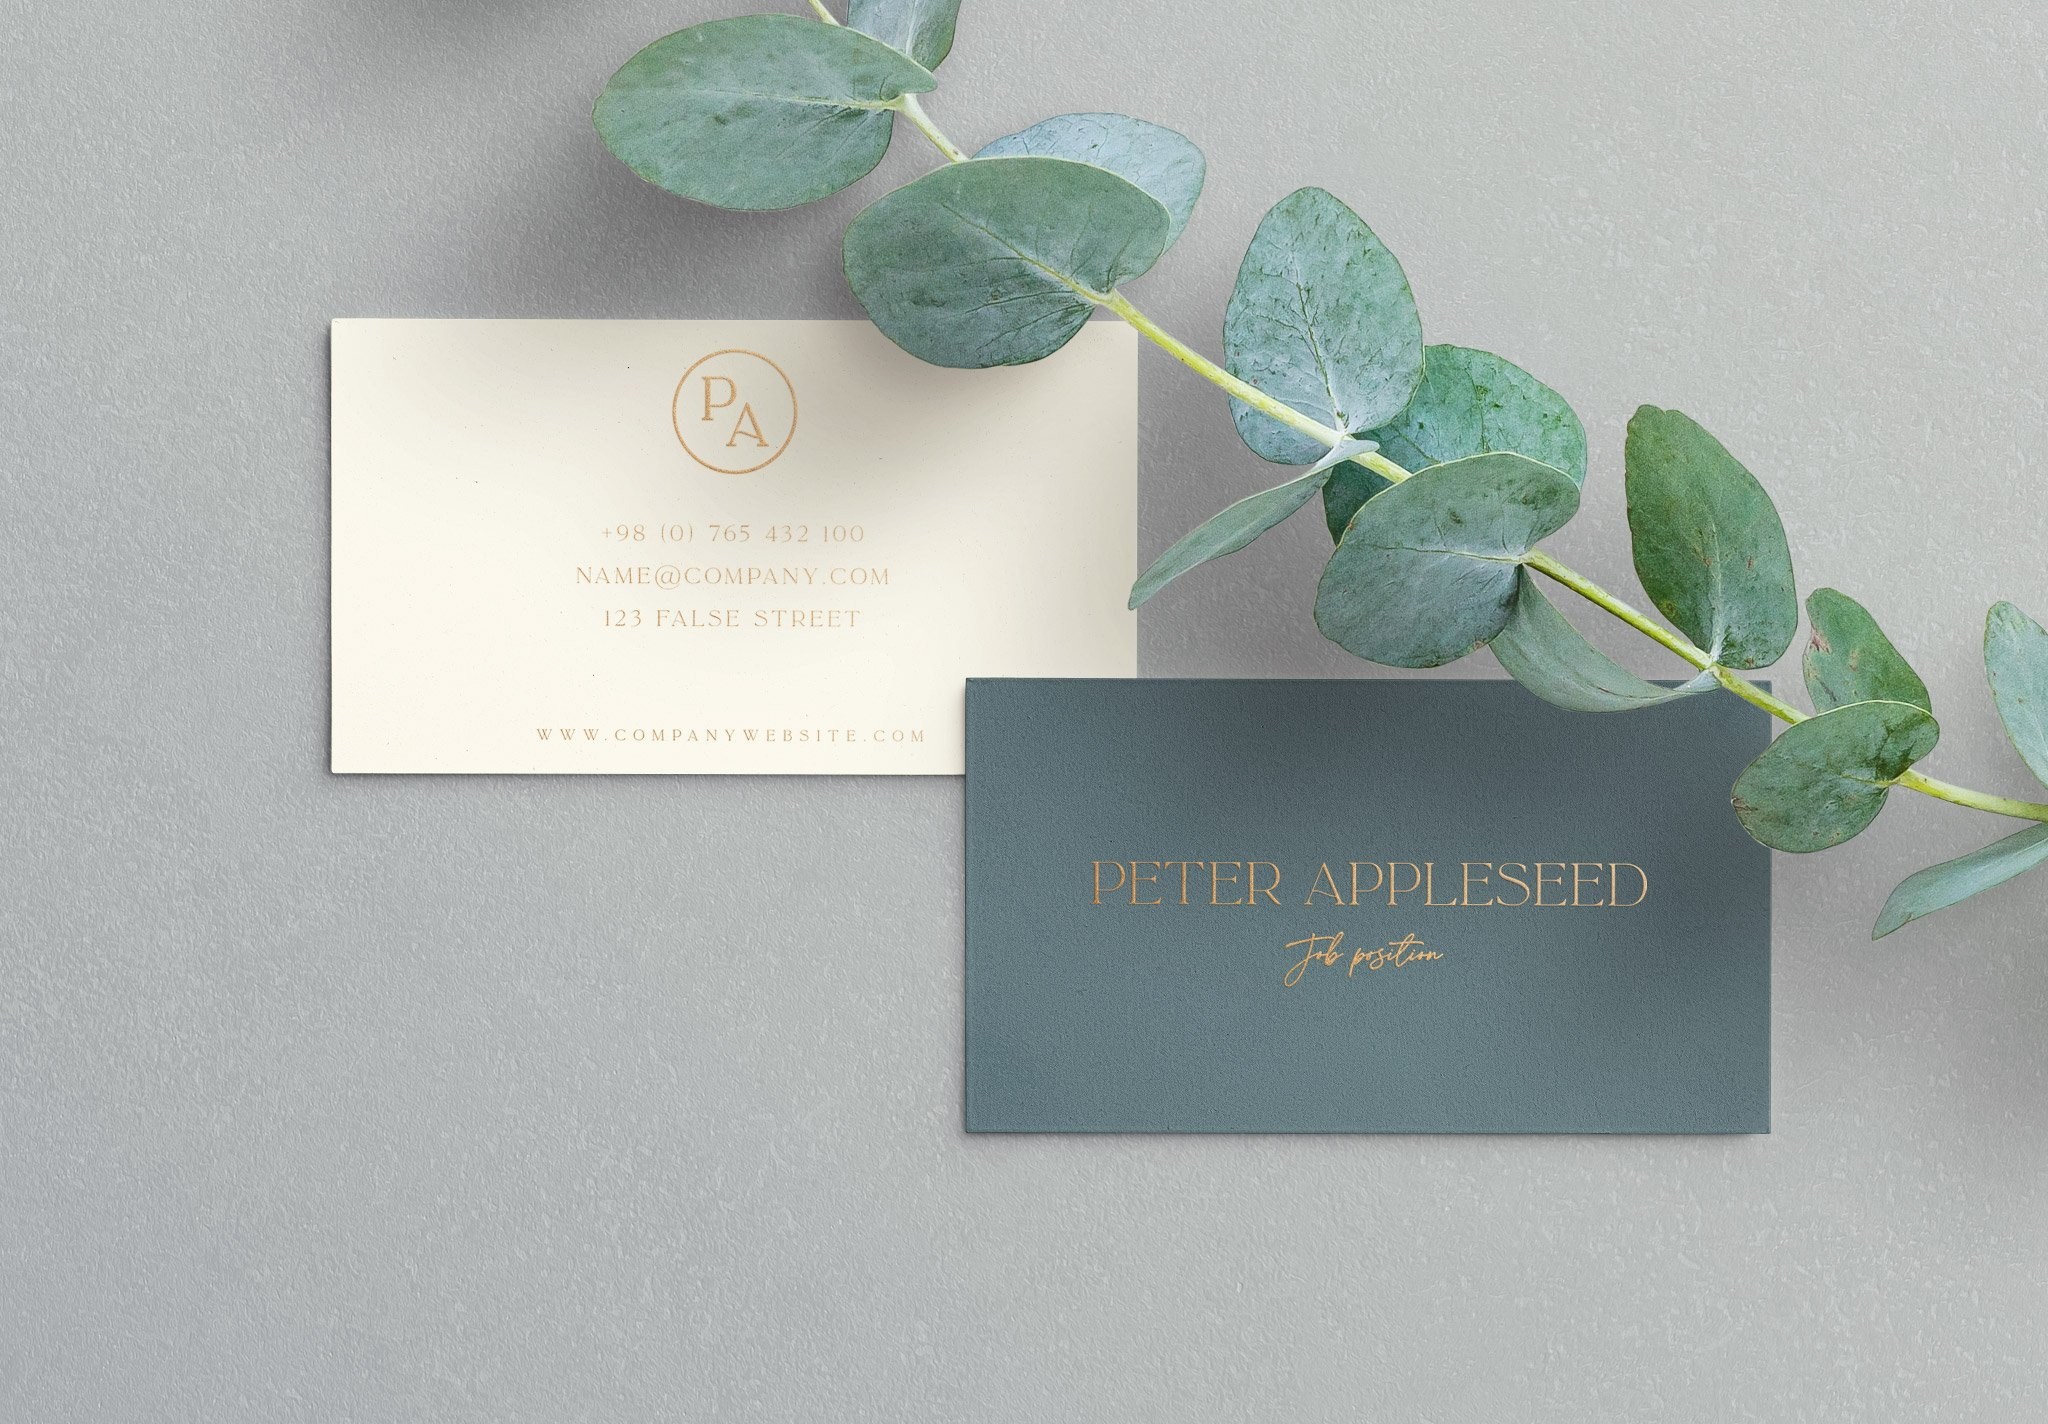 business cards layout 5 image04